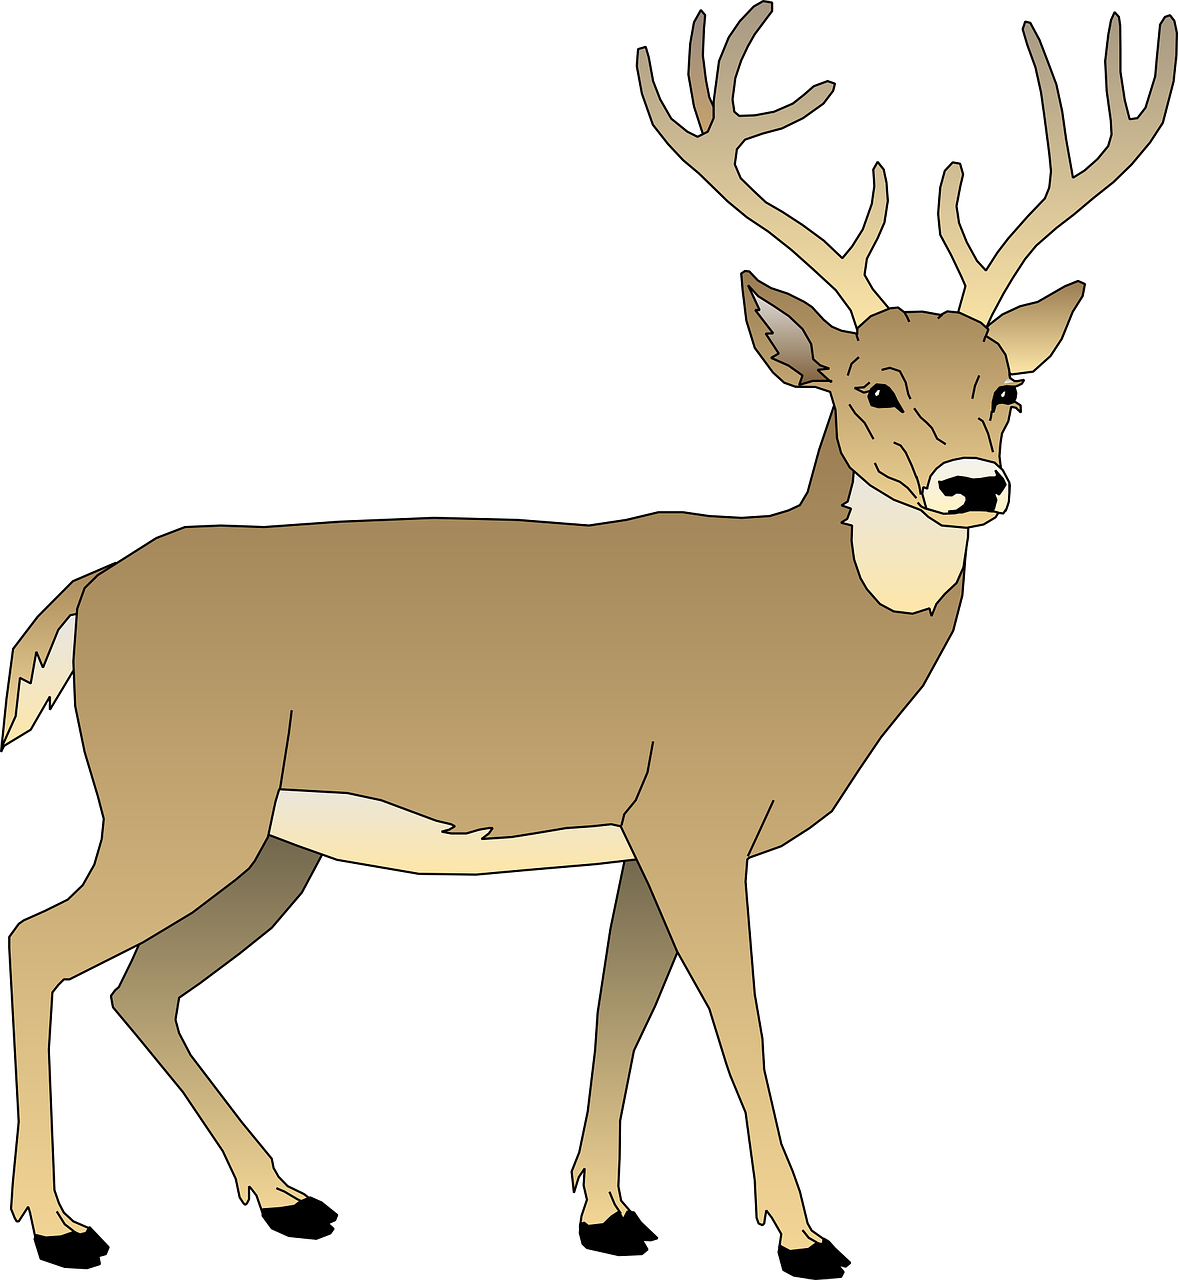 Spring Wildlife Movement And Activity On Lawns And Gardens Animals Whitetail Deer Mammals